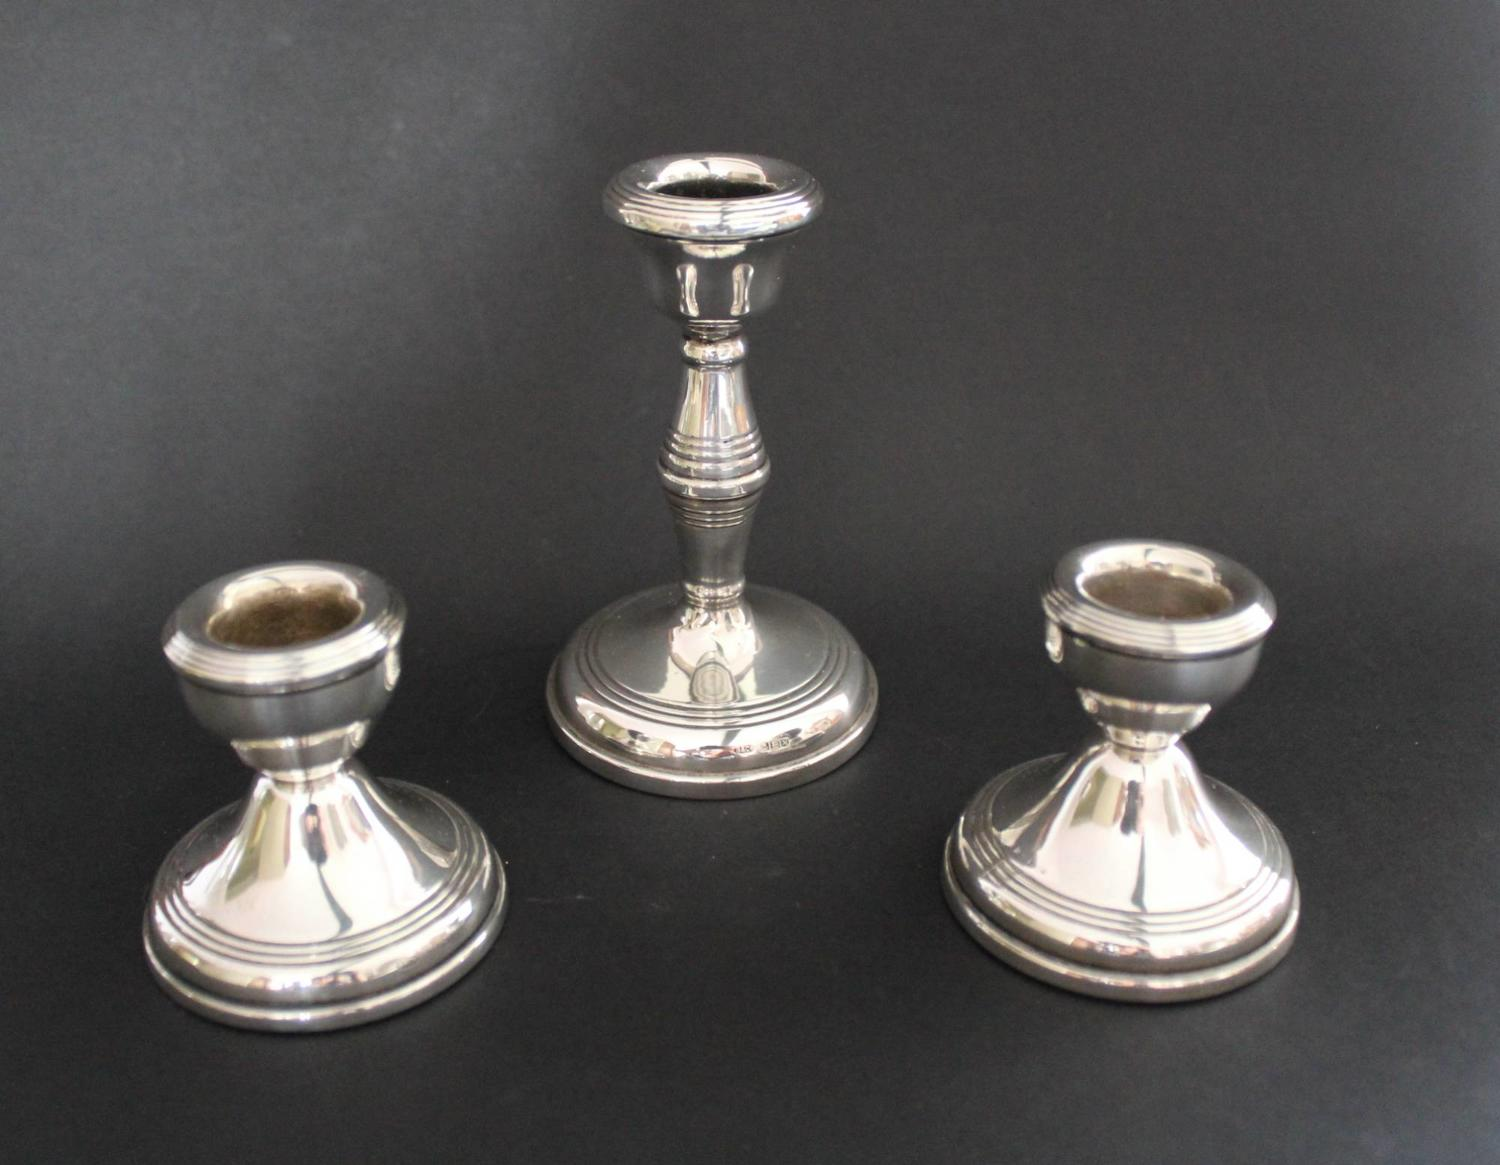 Garniture of Silver Candlesticks